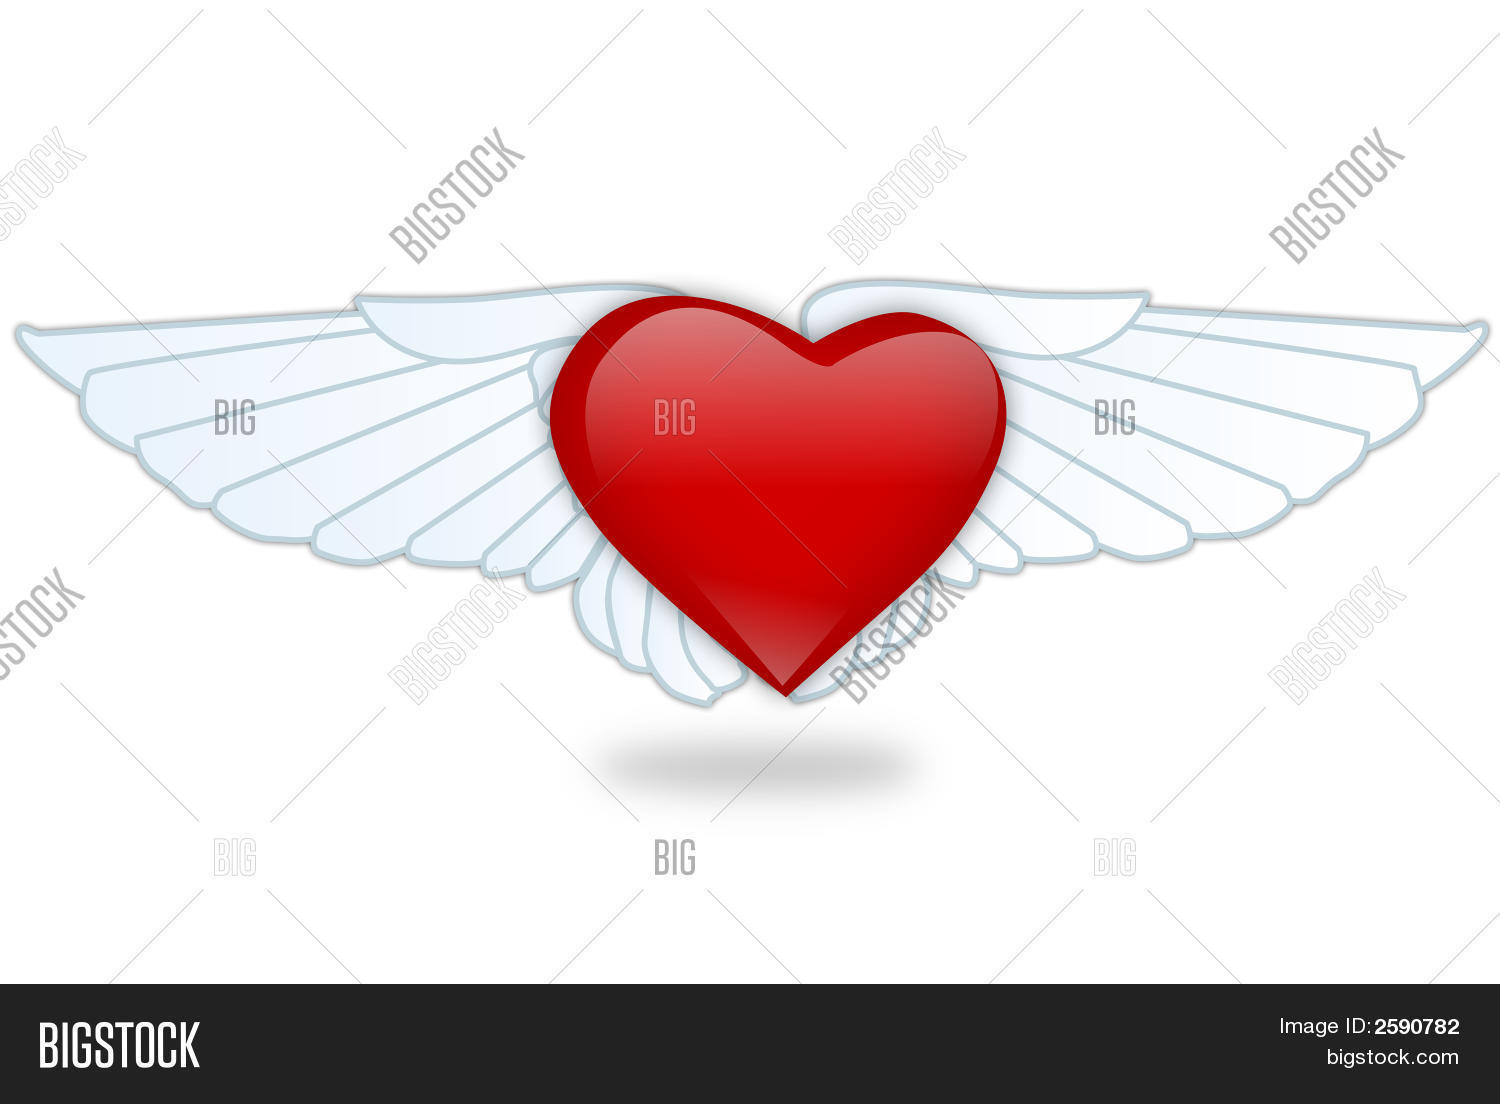 Heartwings Image & Photo (Free Trial) | Bigstock